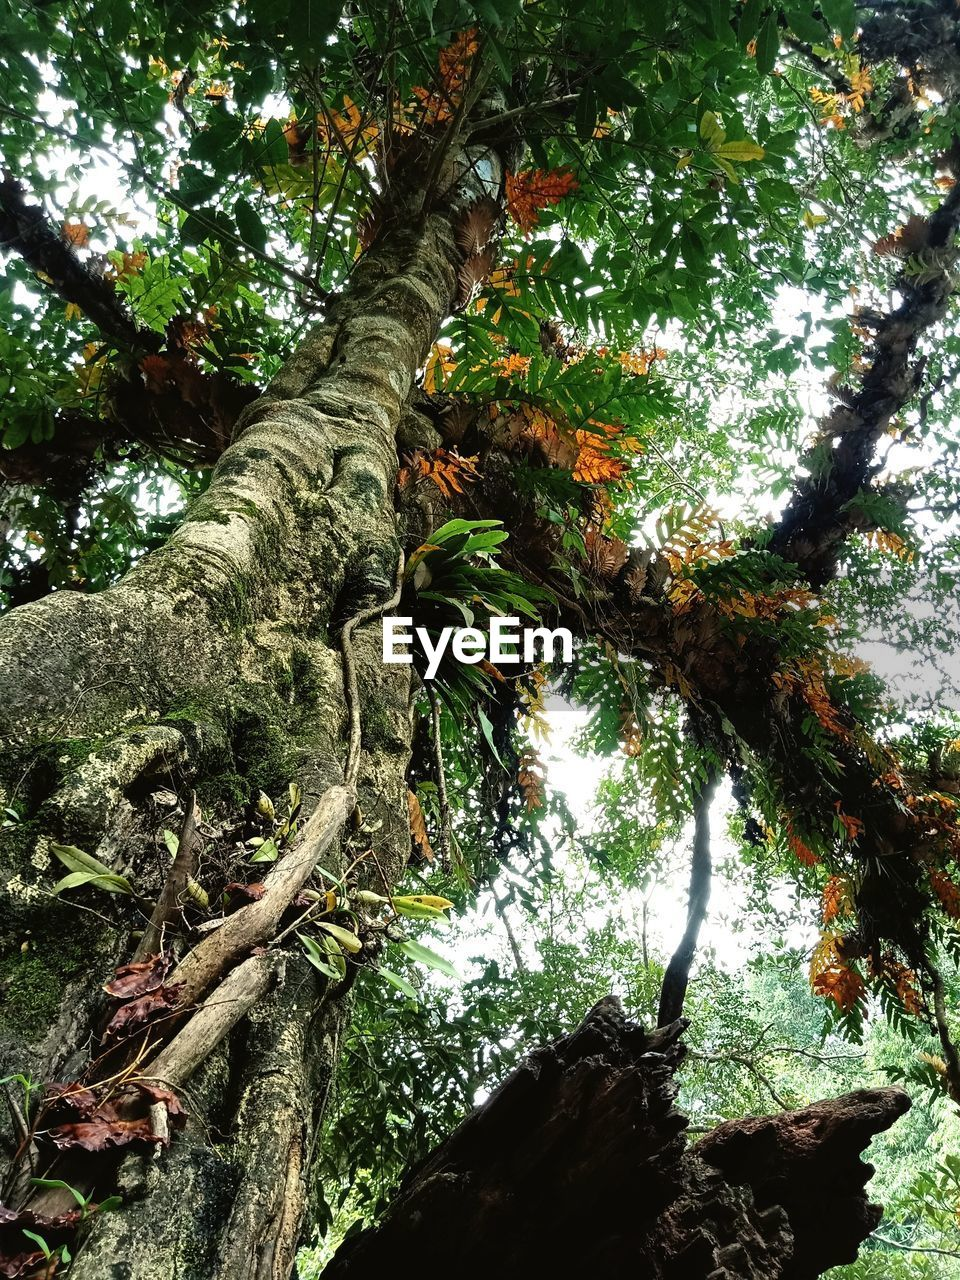 tree, plant, growth, tree trunk, nature, trunk, low angle view, branch, plant part, tranquility, day, land, beauty in nature, forest, no people, outdoors, leaf, sunlight, green color, scenics - nature, tree canopy